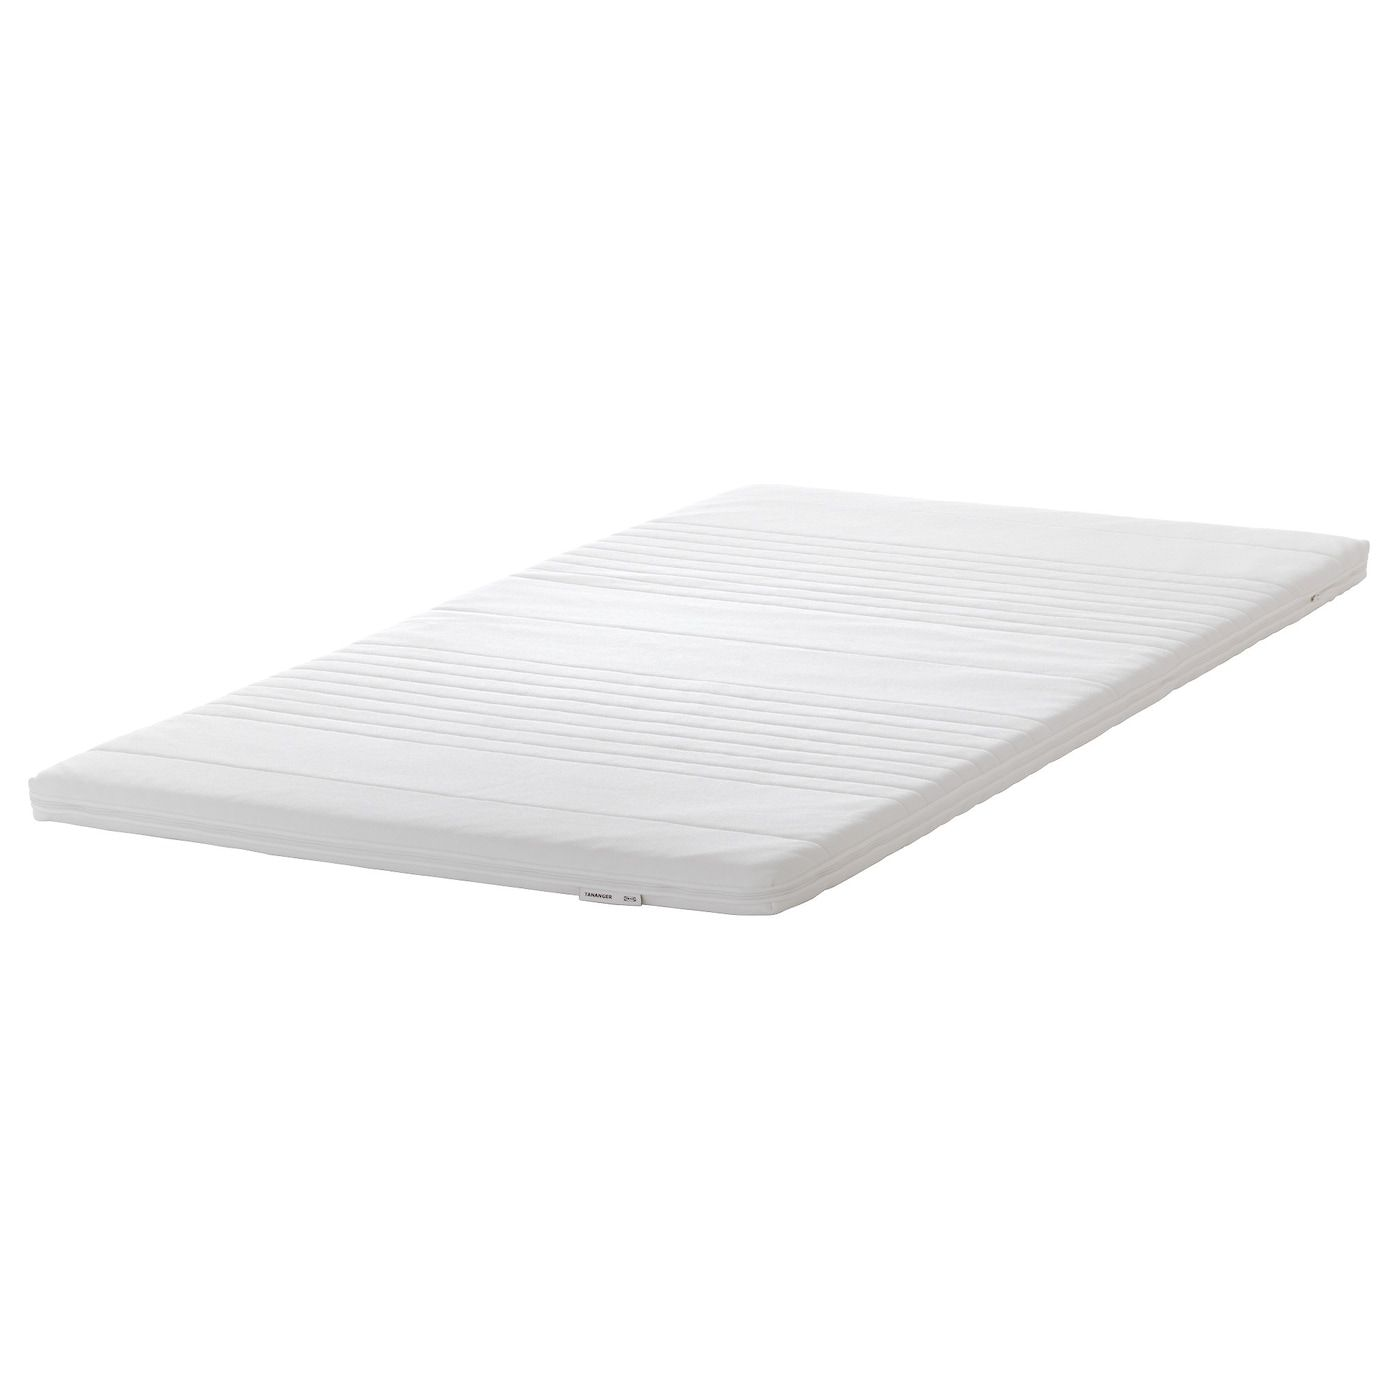 Tananger Mattress Topper White Twin Ikea In 2020 Mattress Topper Mattress Foam Mattress